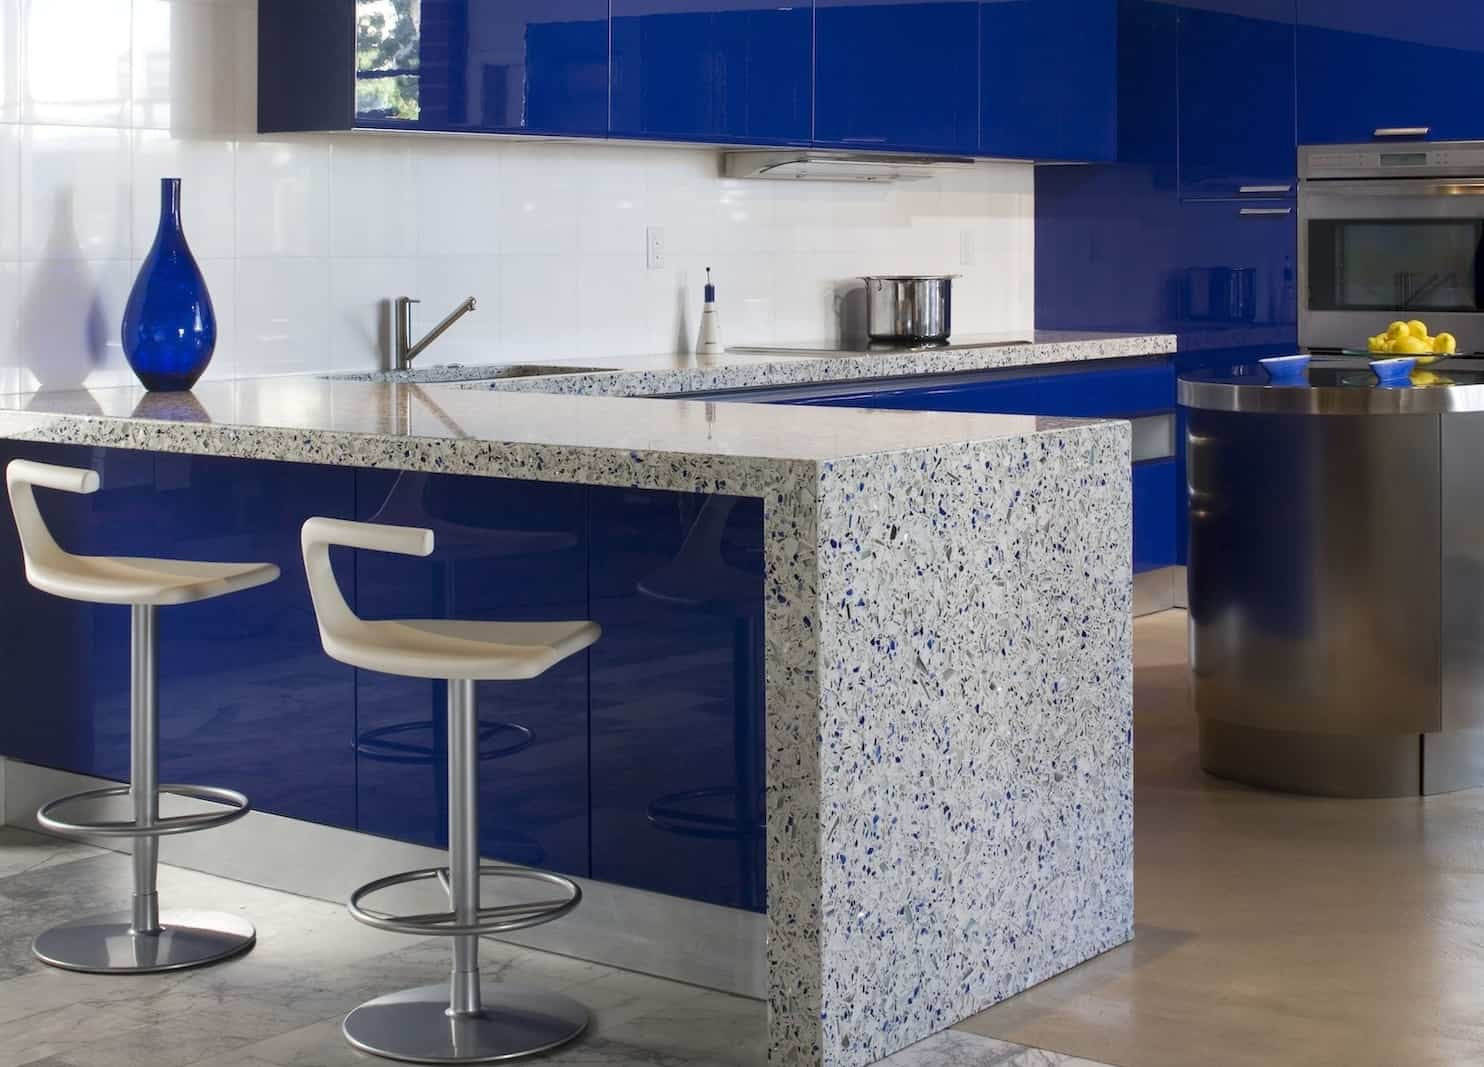 modern kitchen countertops from unusual materials modern kitchen countertops View in gallery modern countertops unusual material kitchen vetrazzo